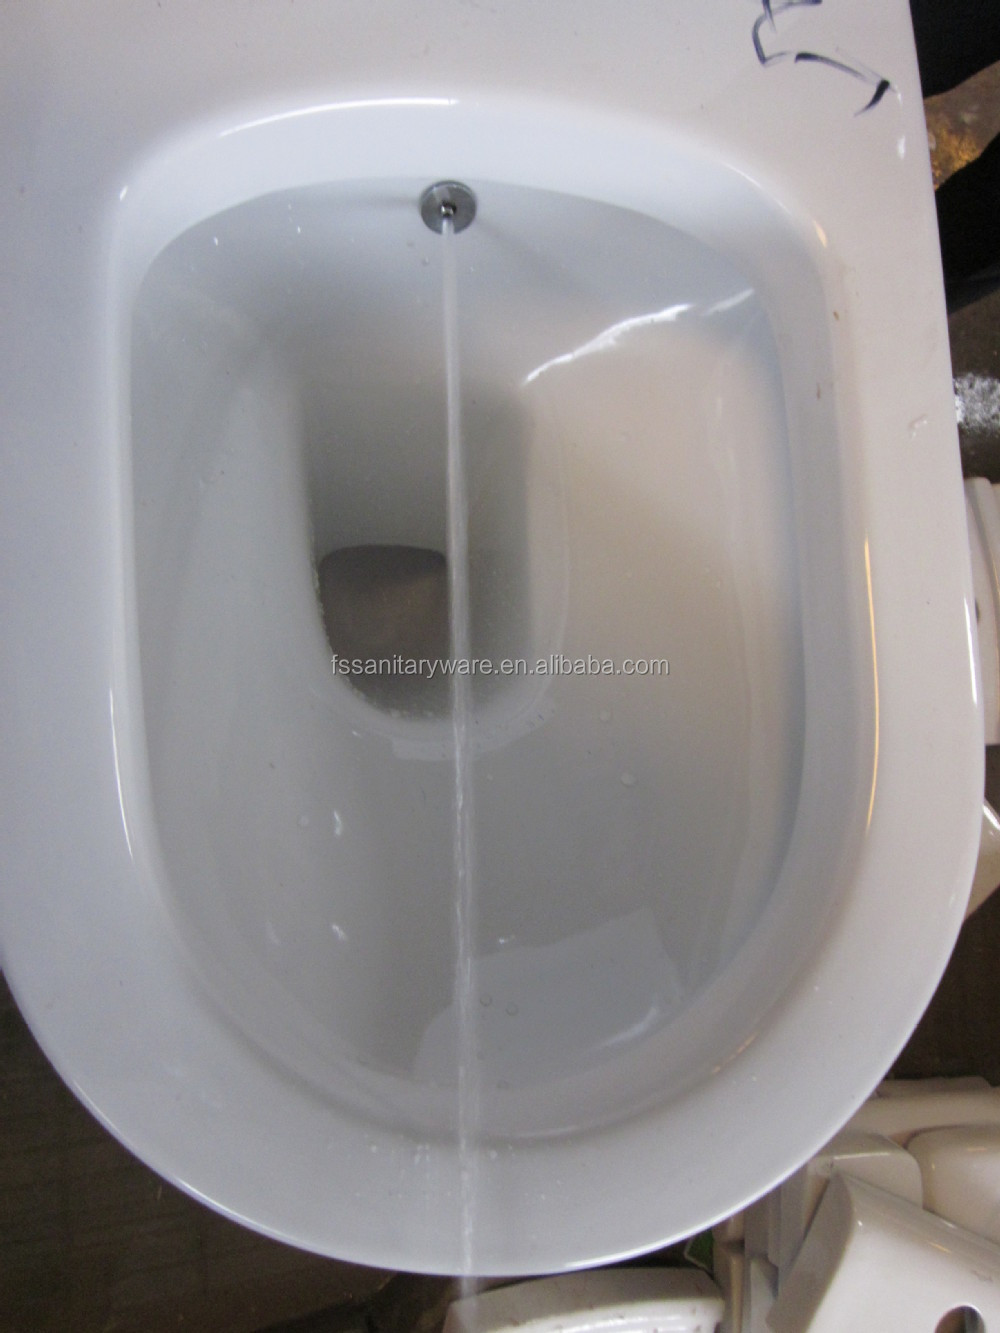 muslim toilet bidet toilet manufacturer toilets with built. Black Bedroom Furniture Sets. Home Design Ideas